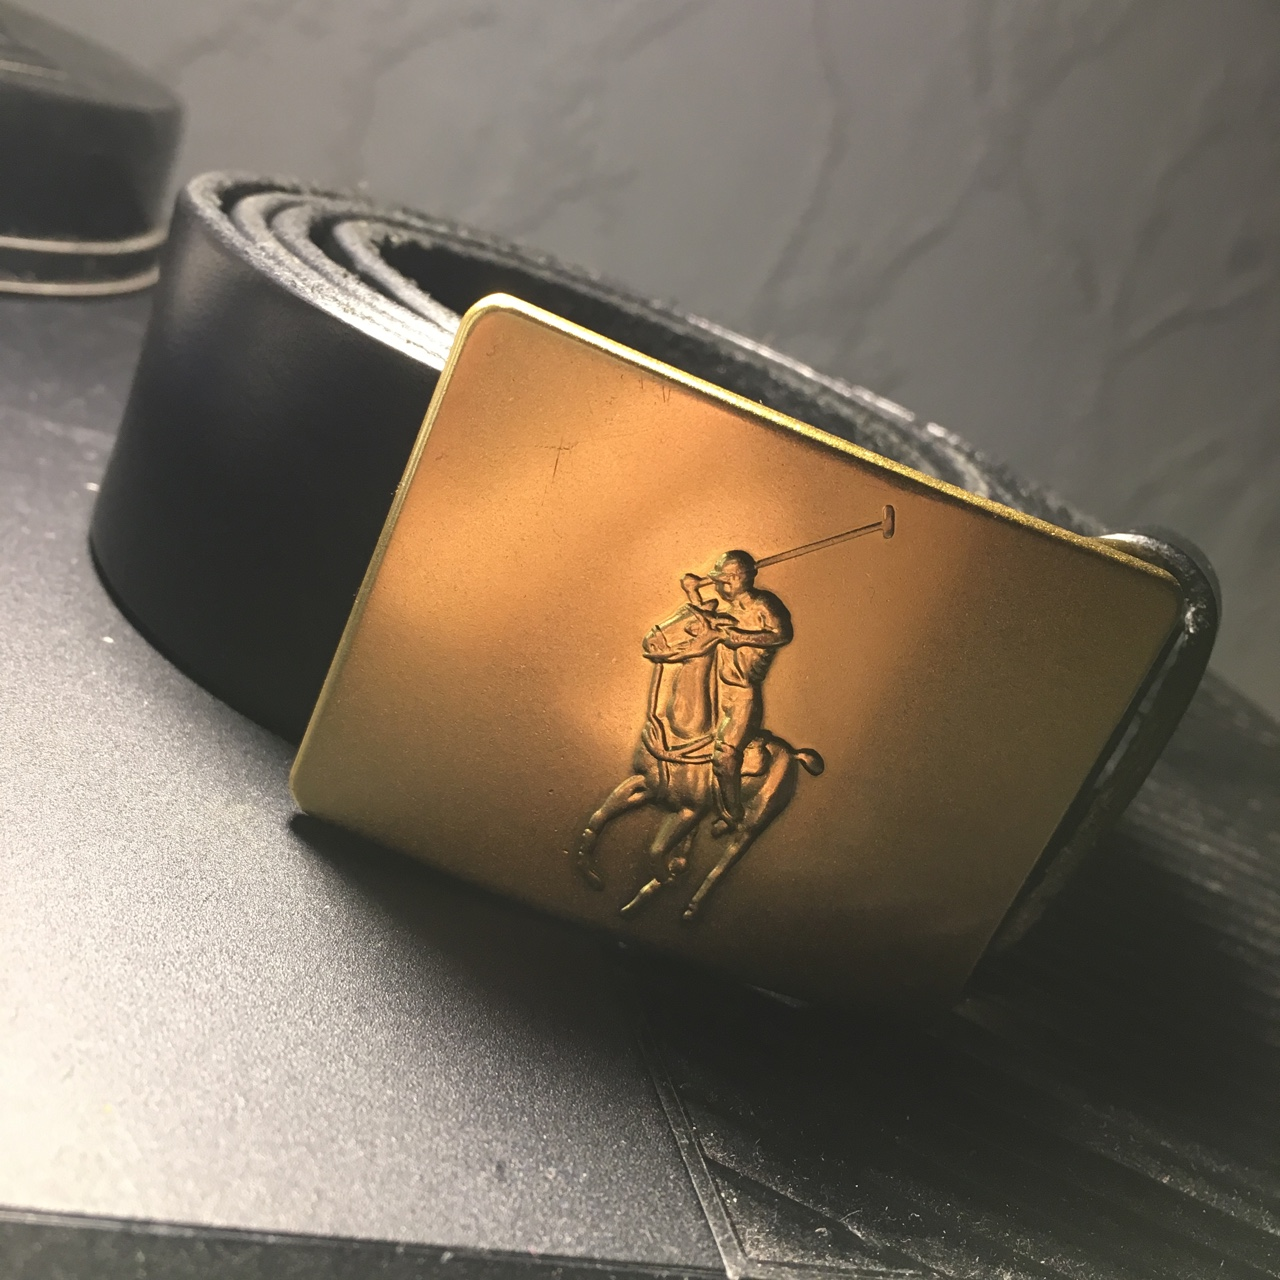 POLO RALPH LAUREN LEATHER BELT WITH BIG PONY METAL BUCKLE BROWN OR BLACK NEW NWT